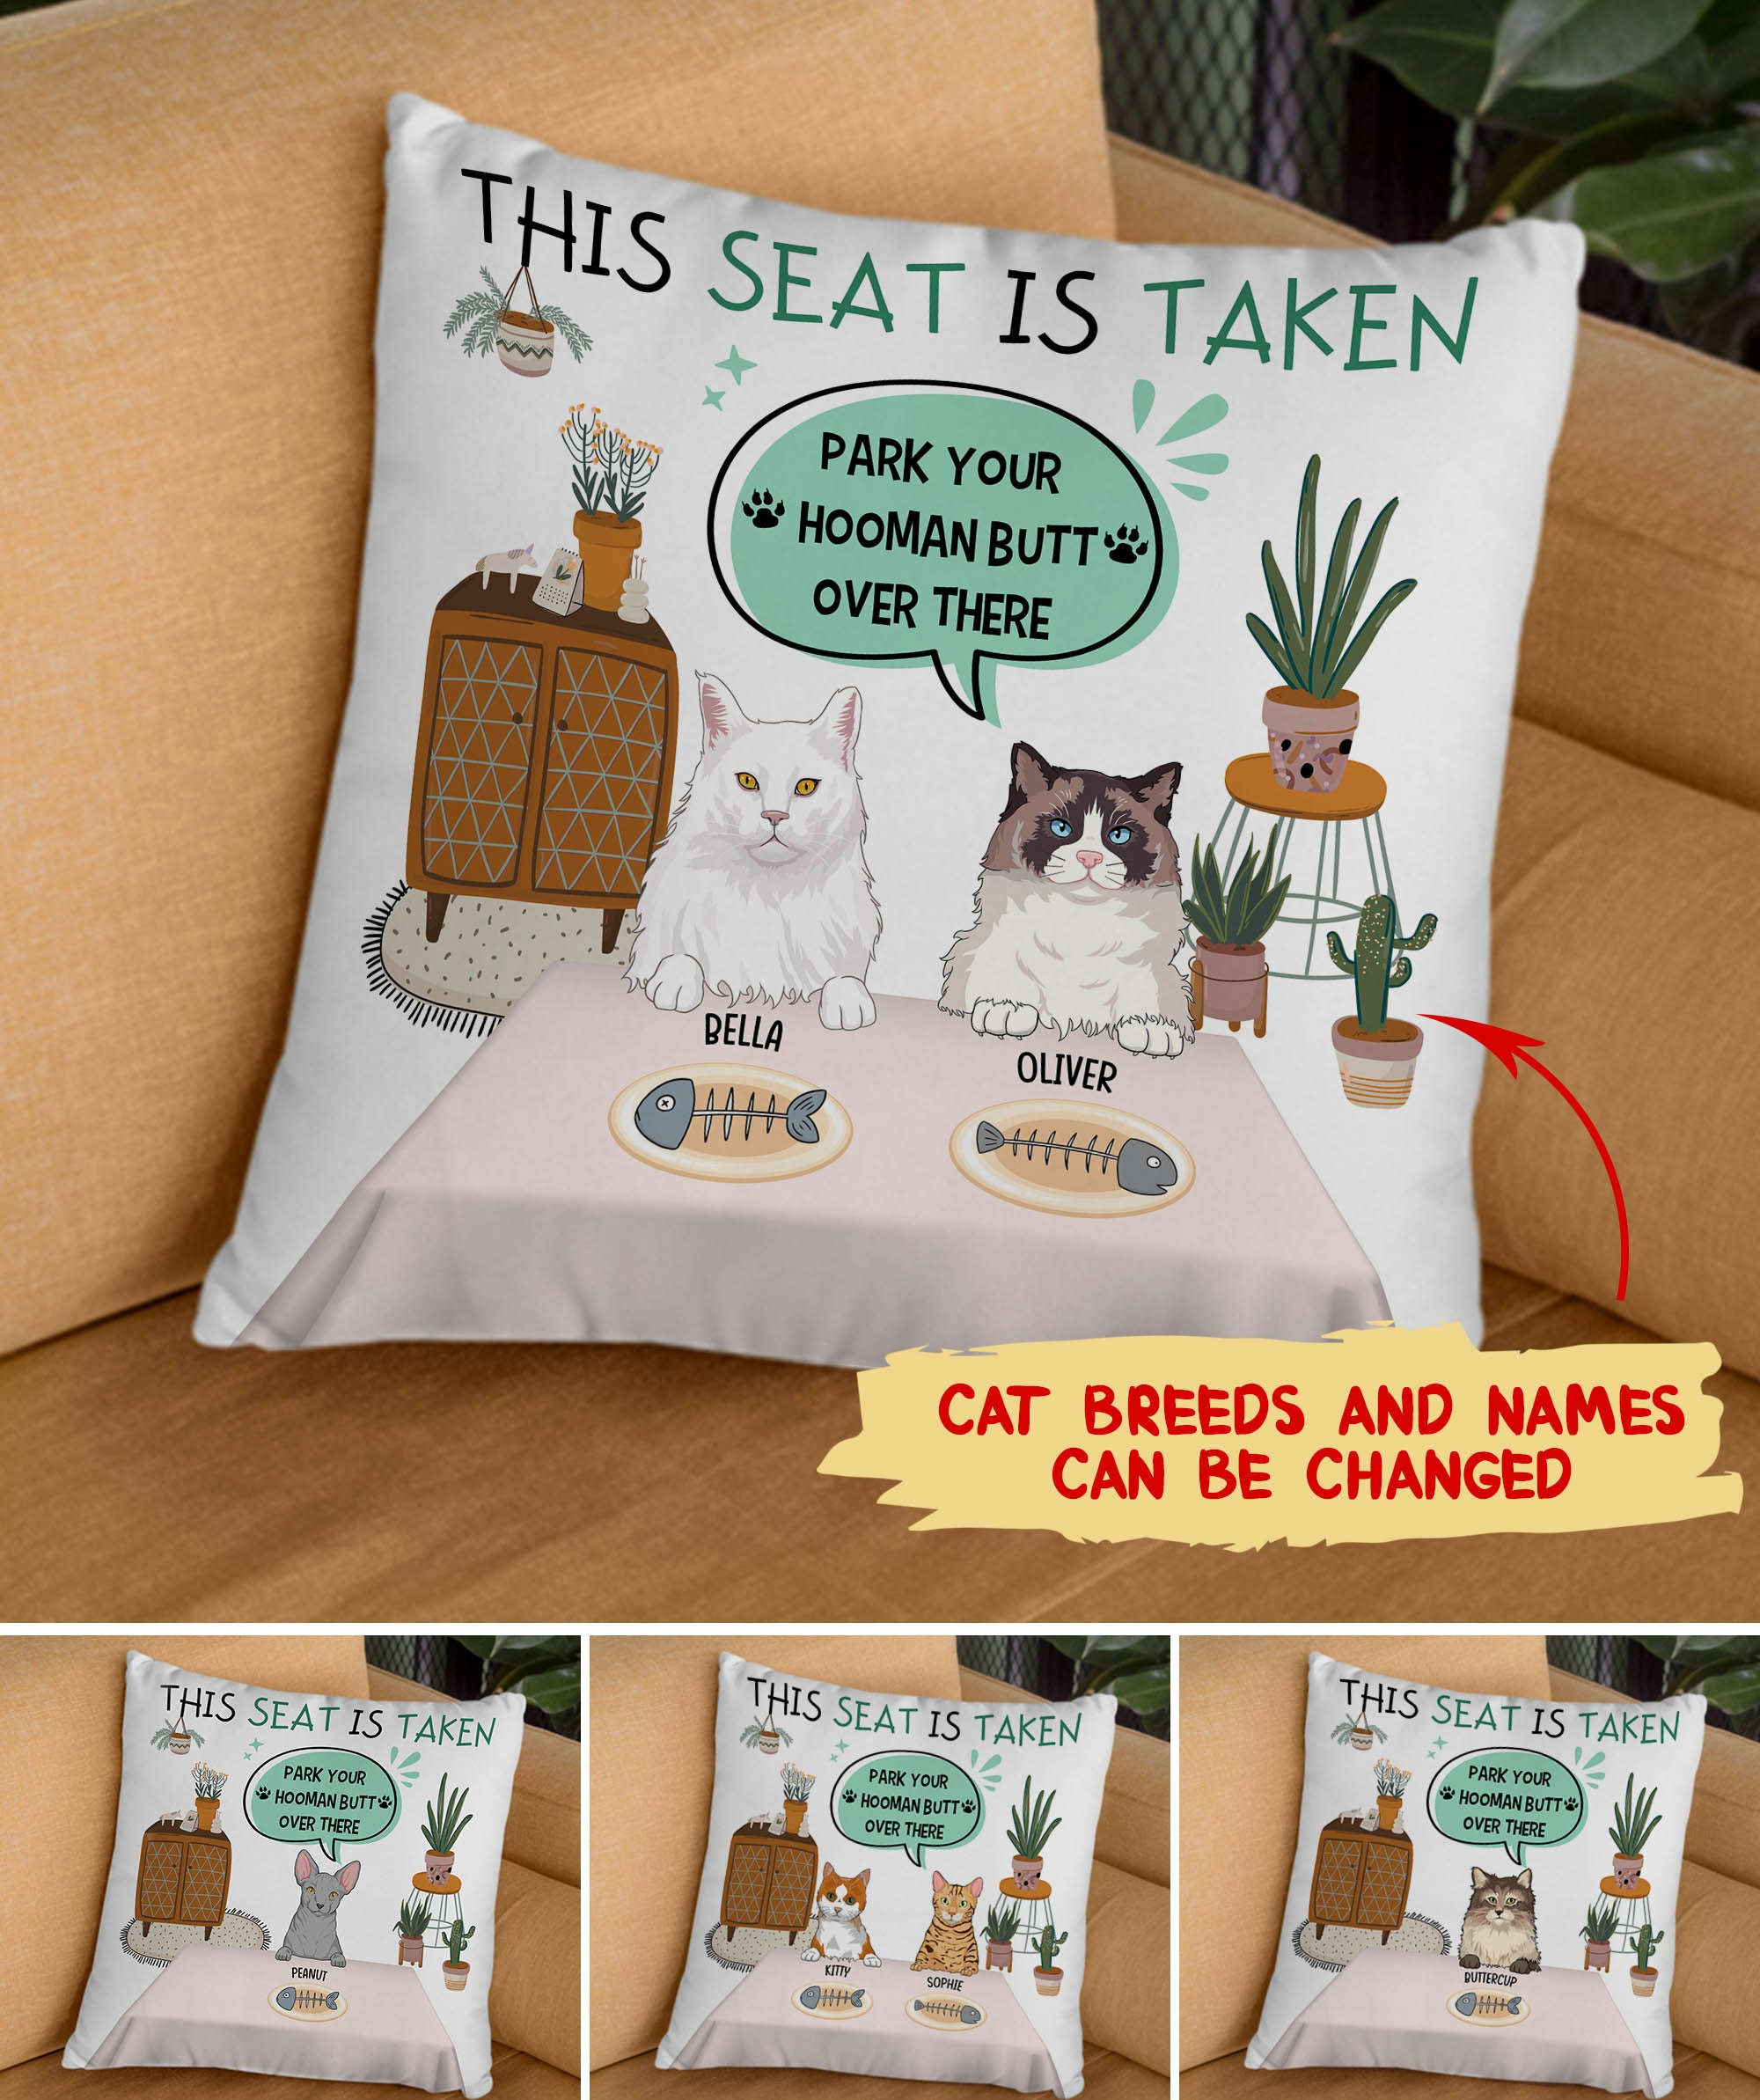 The Seat Is Taken - Personalized Custom Linen Pillow